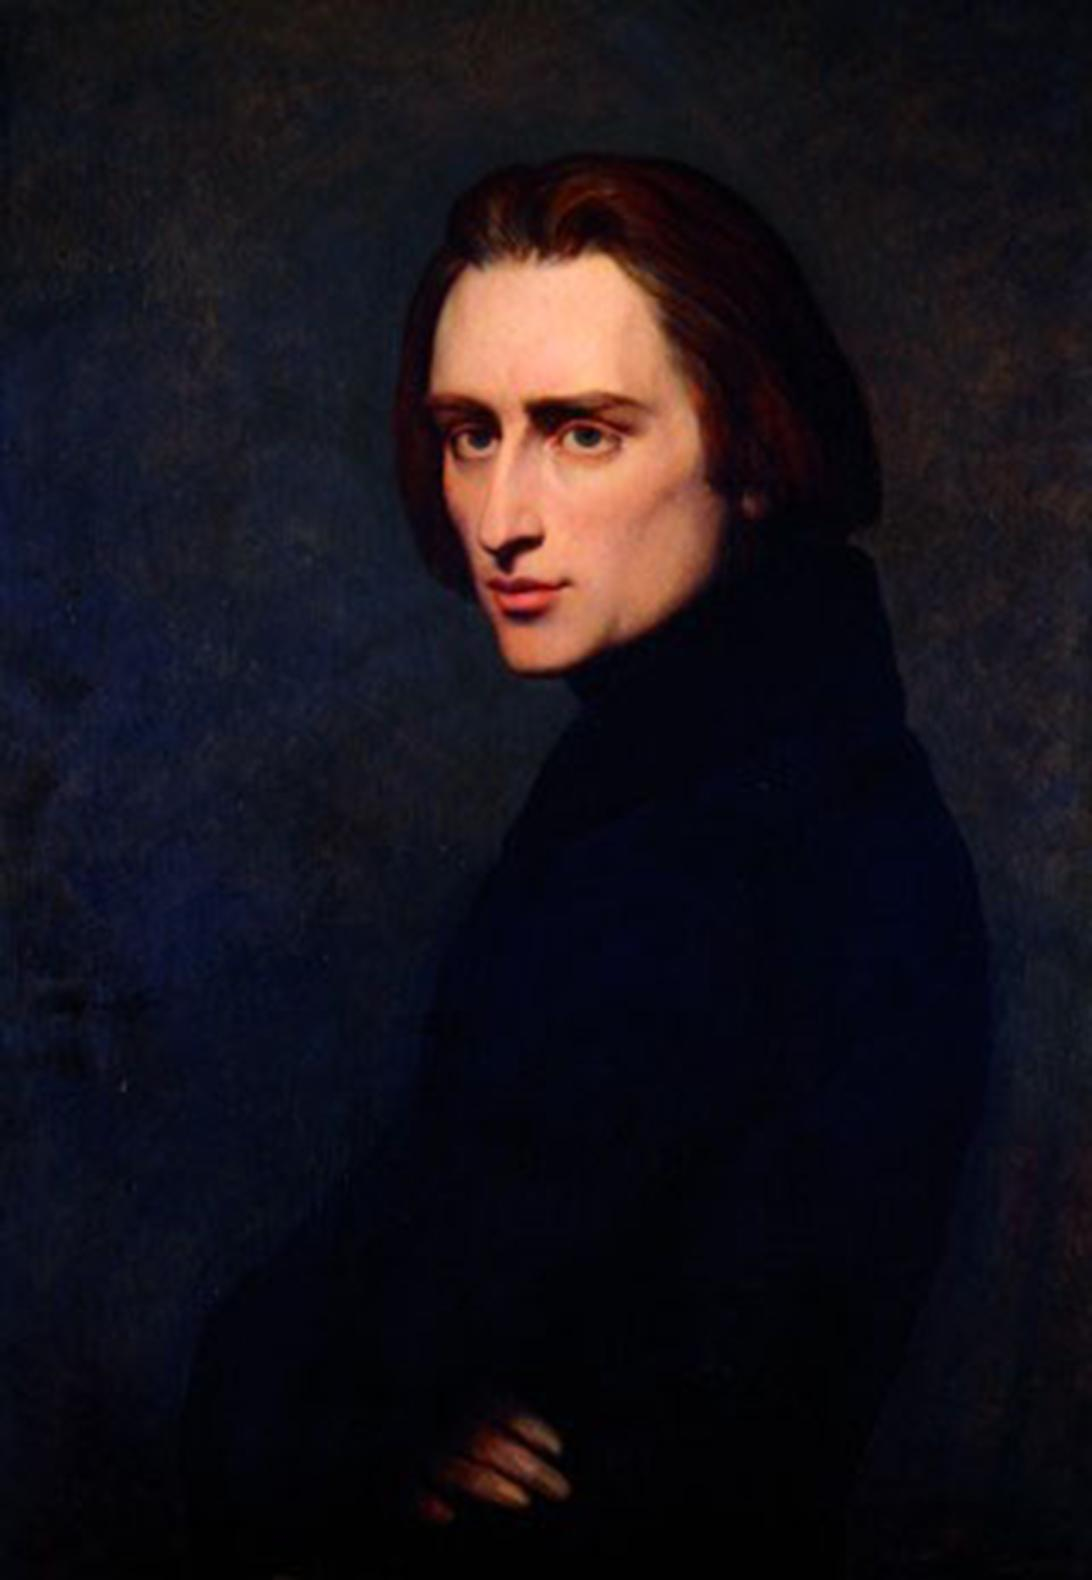 franz liszt Franz liszt (october 22, 1811 - july 31, 1886) was a major figure in 19 th-century music, an innovator in the way he combined a fierce and unquenchable creative fire.